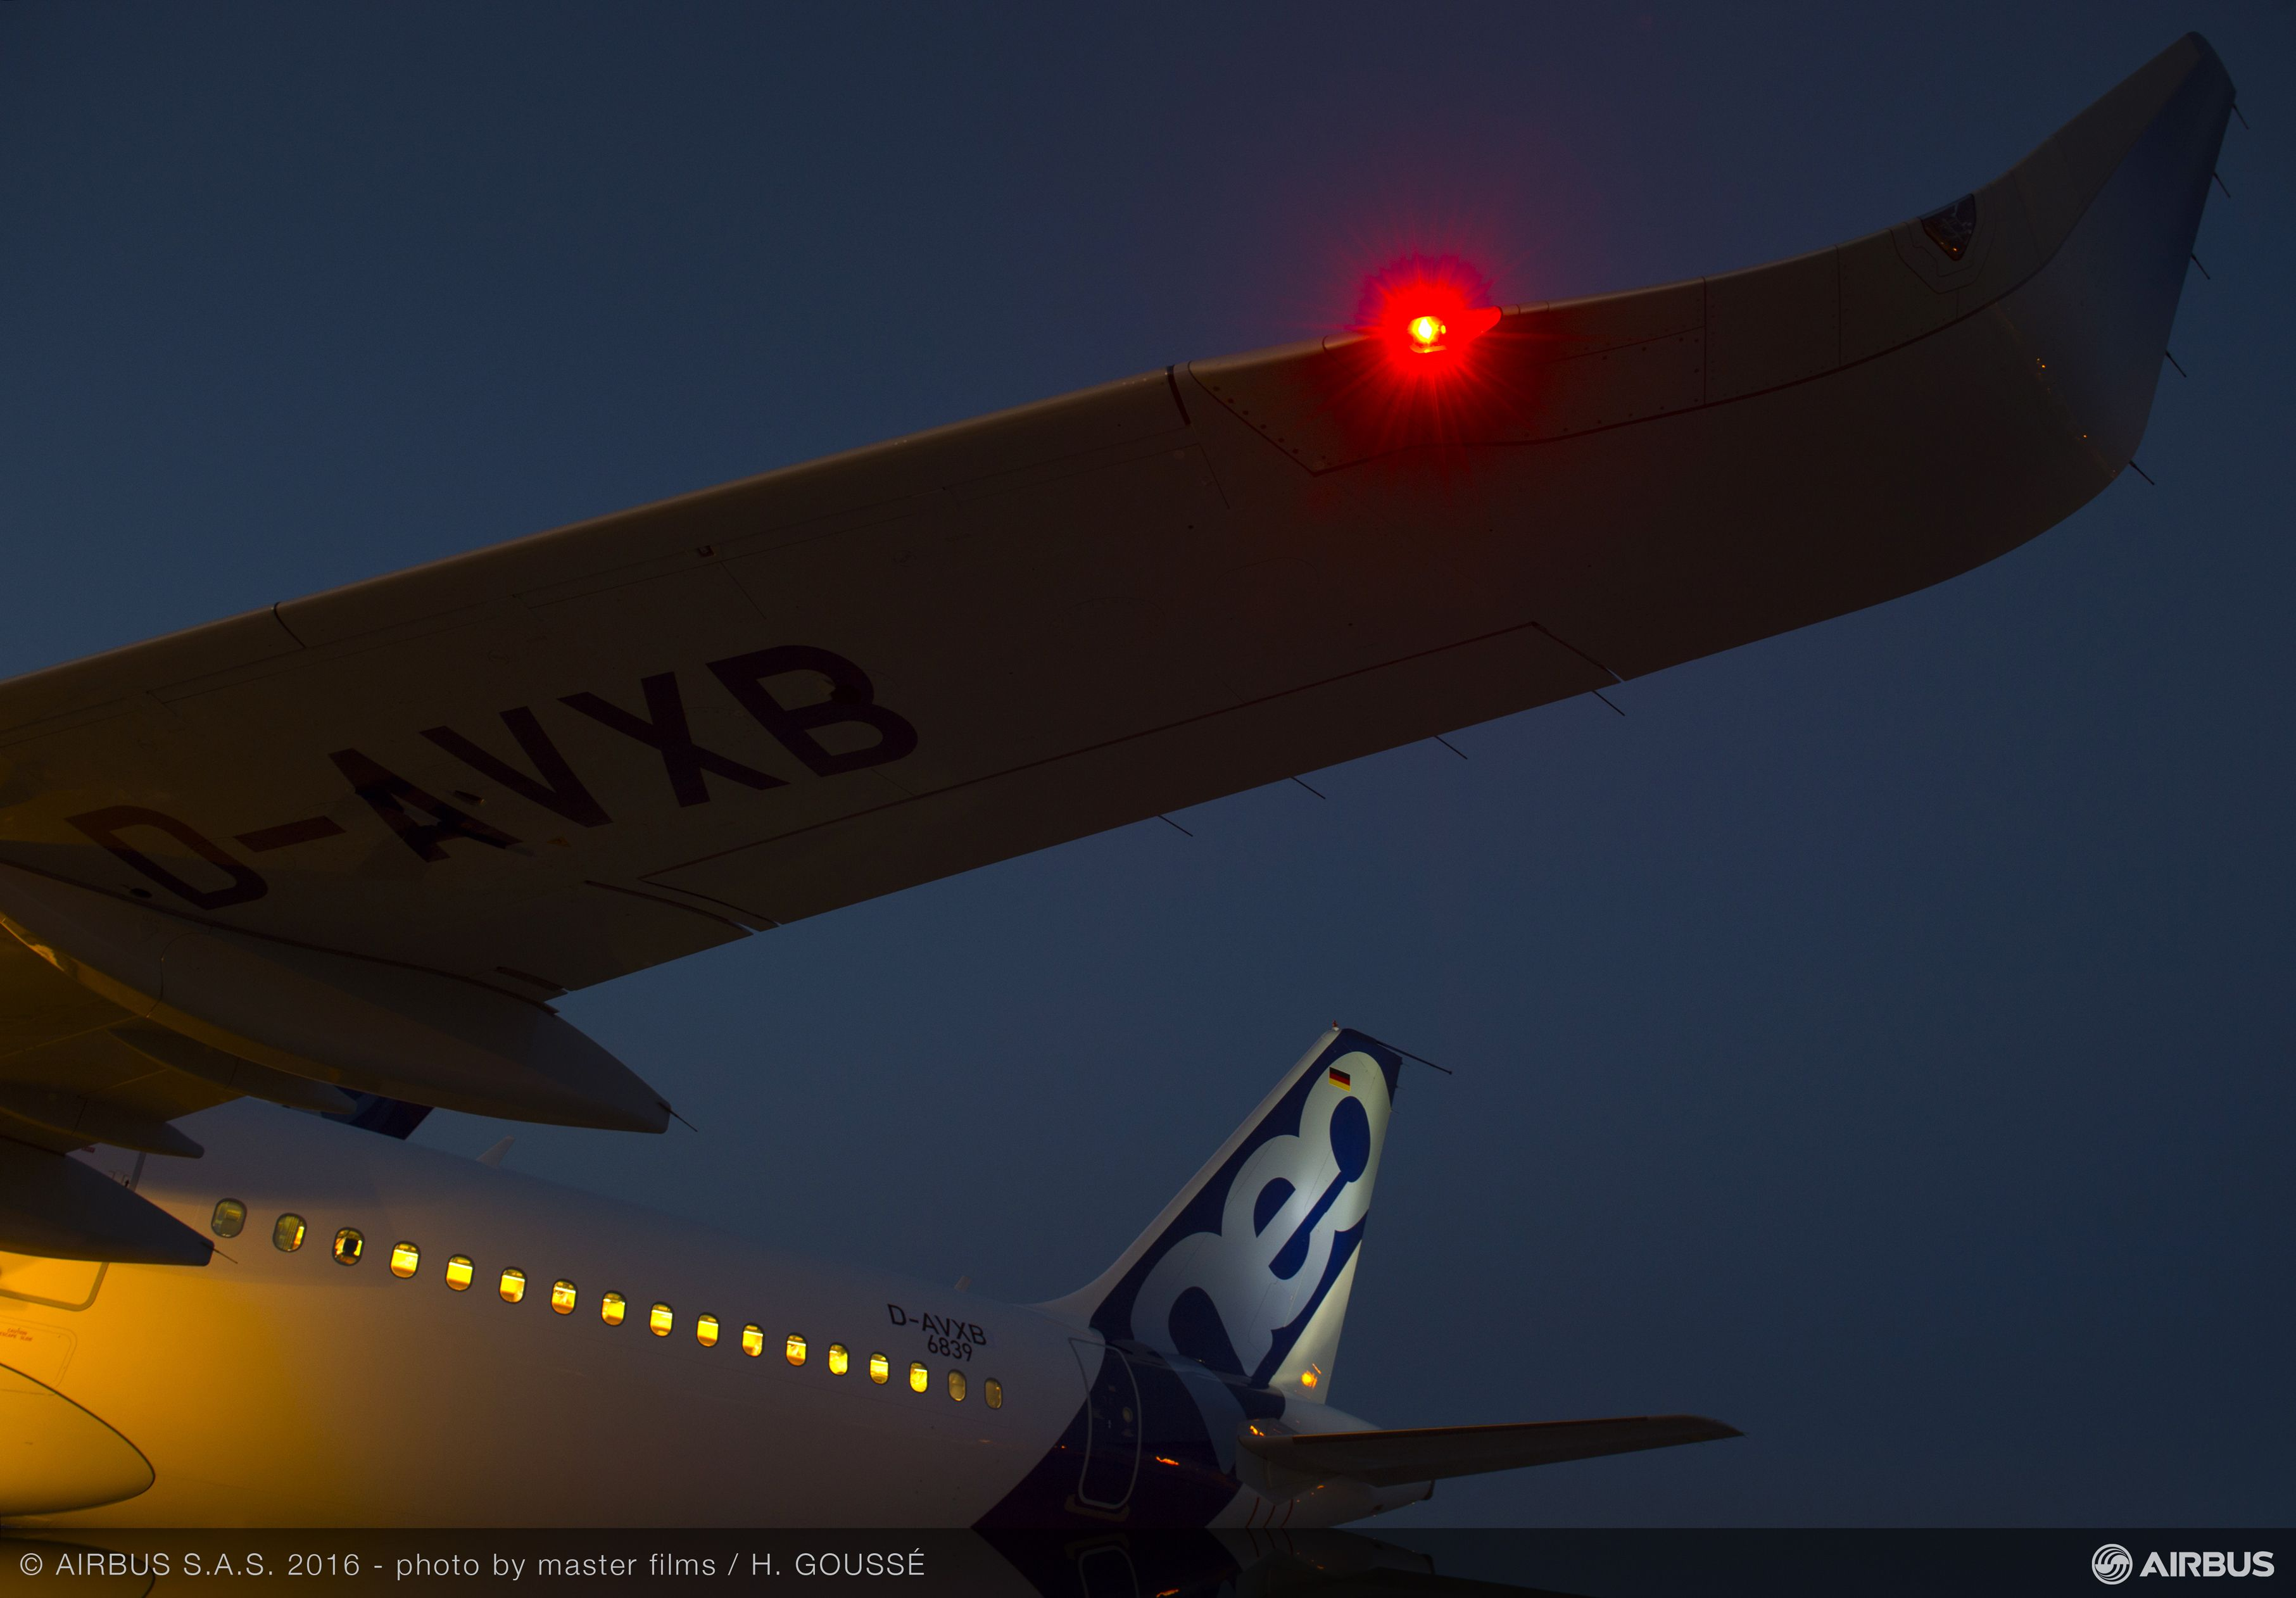 Red Green And White Shedding Light On Aircraft Illumination